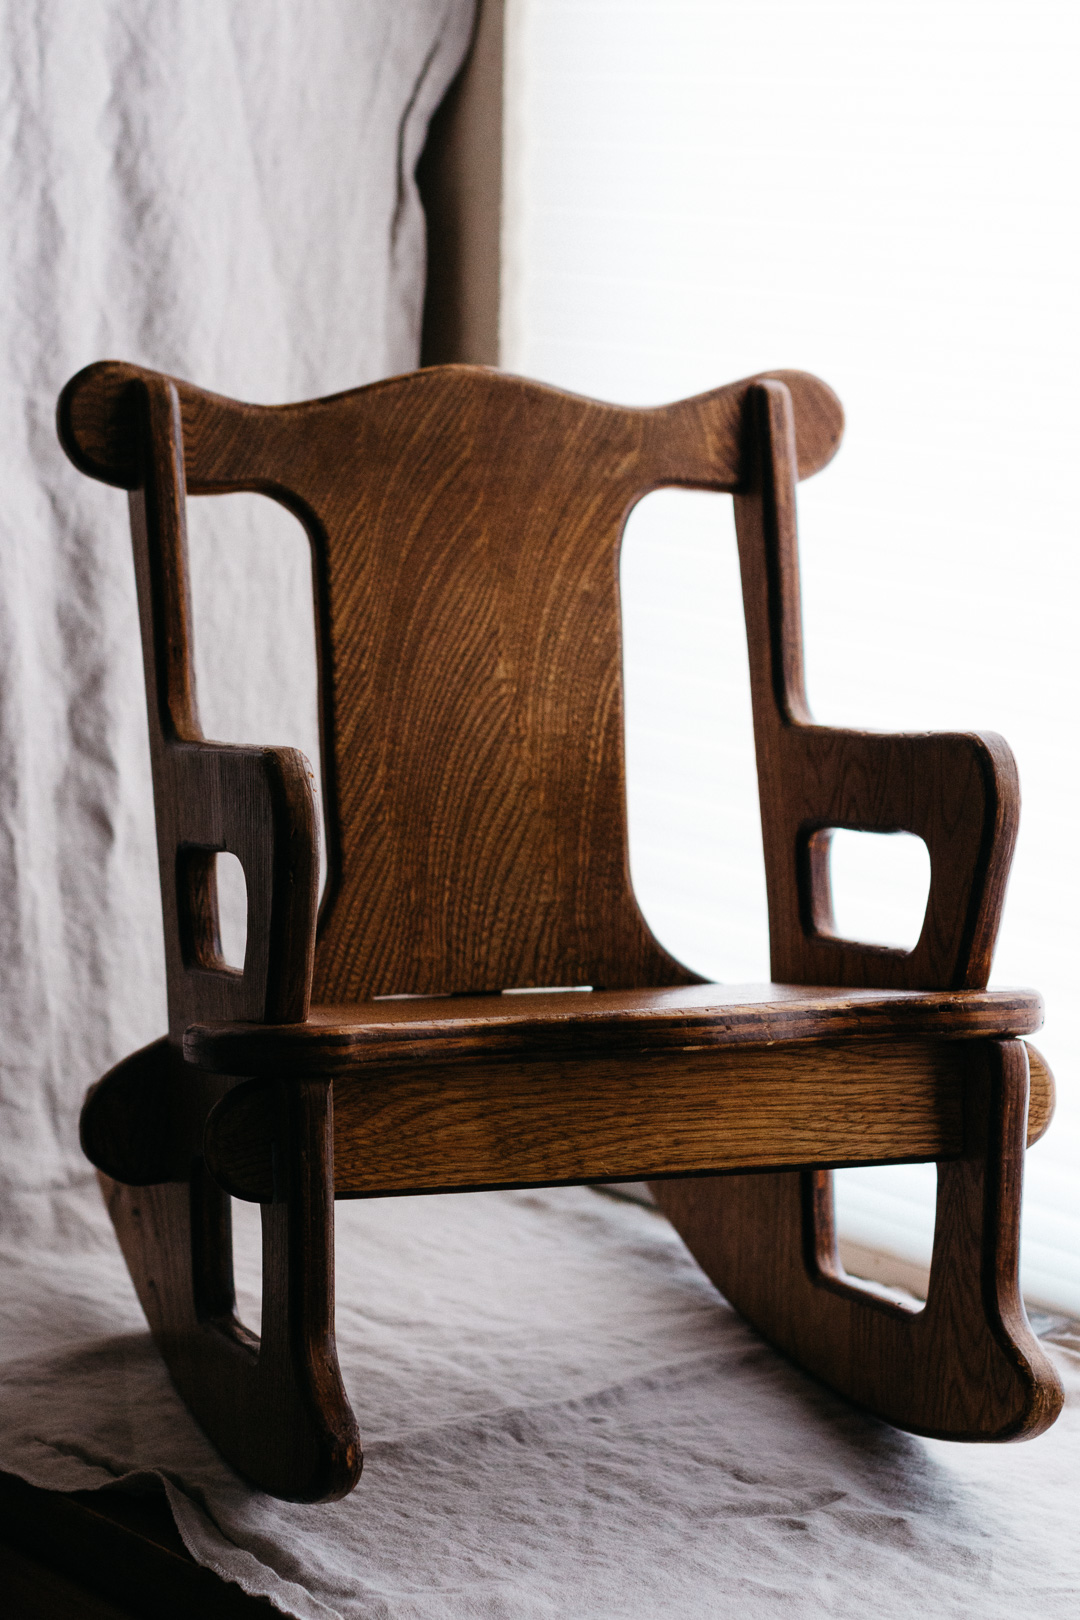 A side angle shot of a child sized wooden rocking chair.